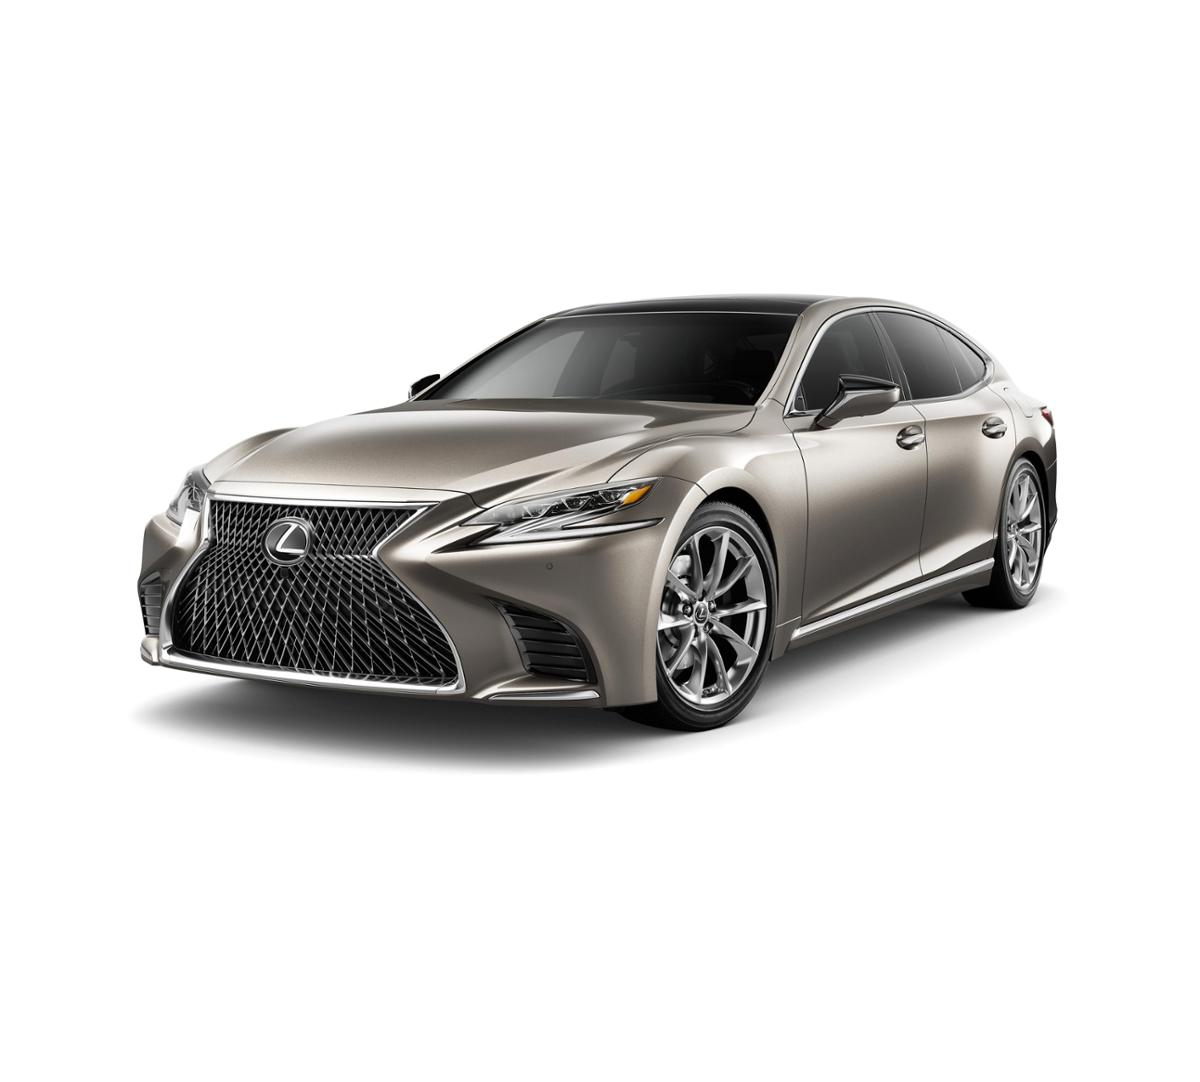 sales department fort sewell cars lexus our used departments worth of service the meet image meetourdepartments